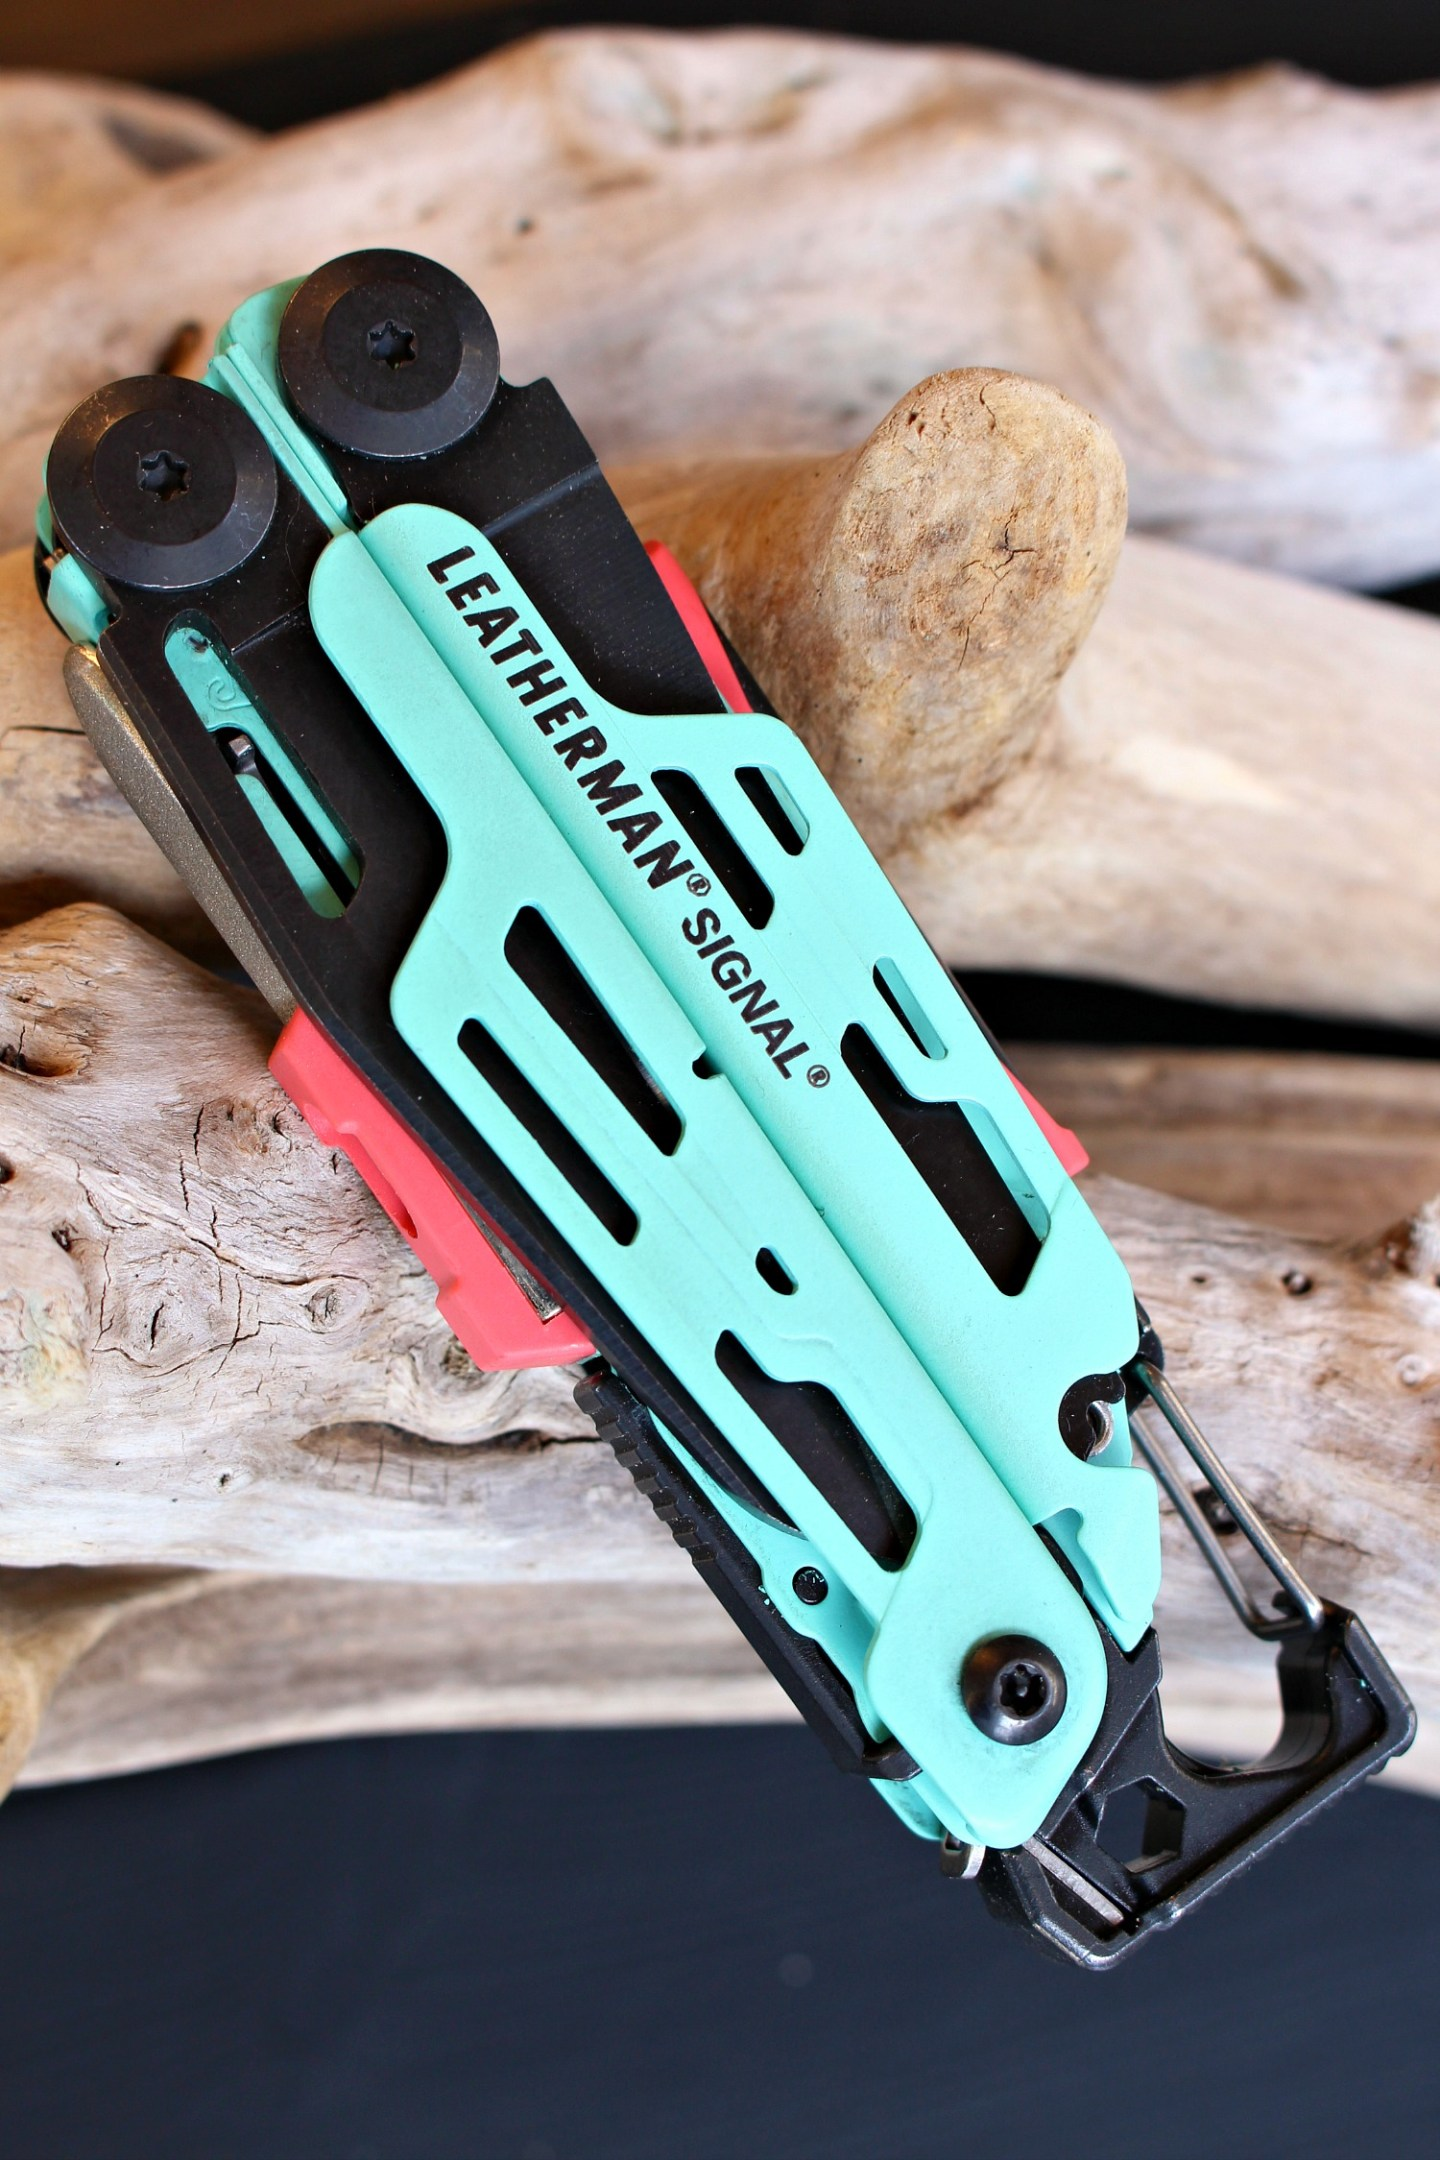 Using a Leatherman Multi Tool Around the House